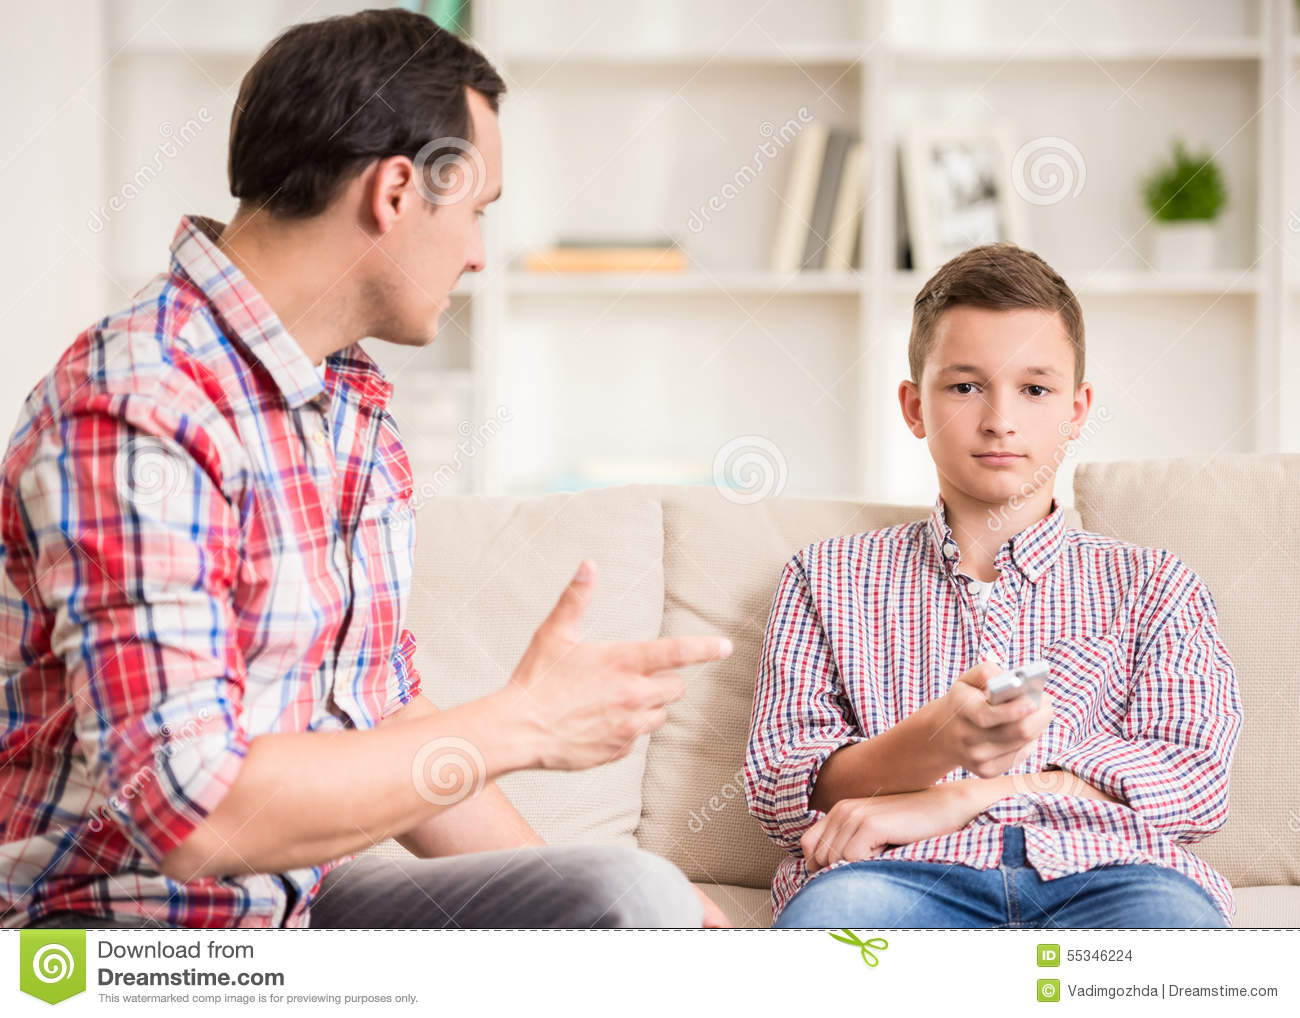 Father And Son At Home Stock Photo Image 55346224 : father son home boy sitting sofa watching television his talking to him 55346224 from dreamstime.com size 1300 x 1018 jpeg 173kB